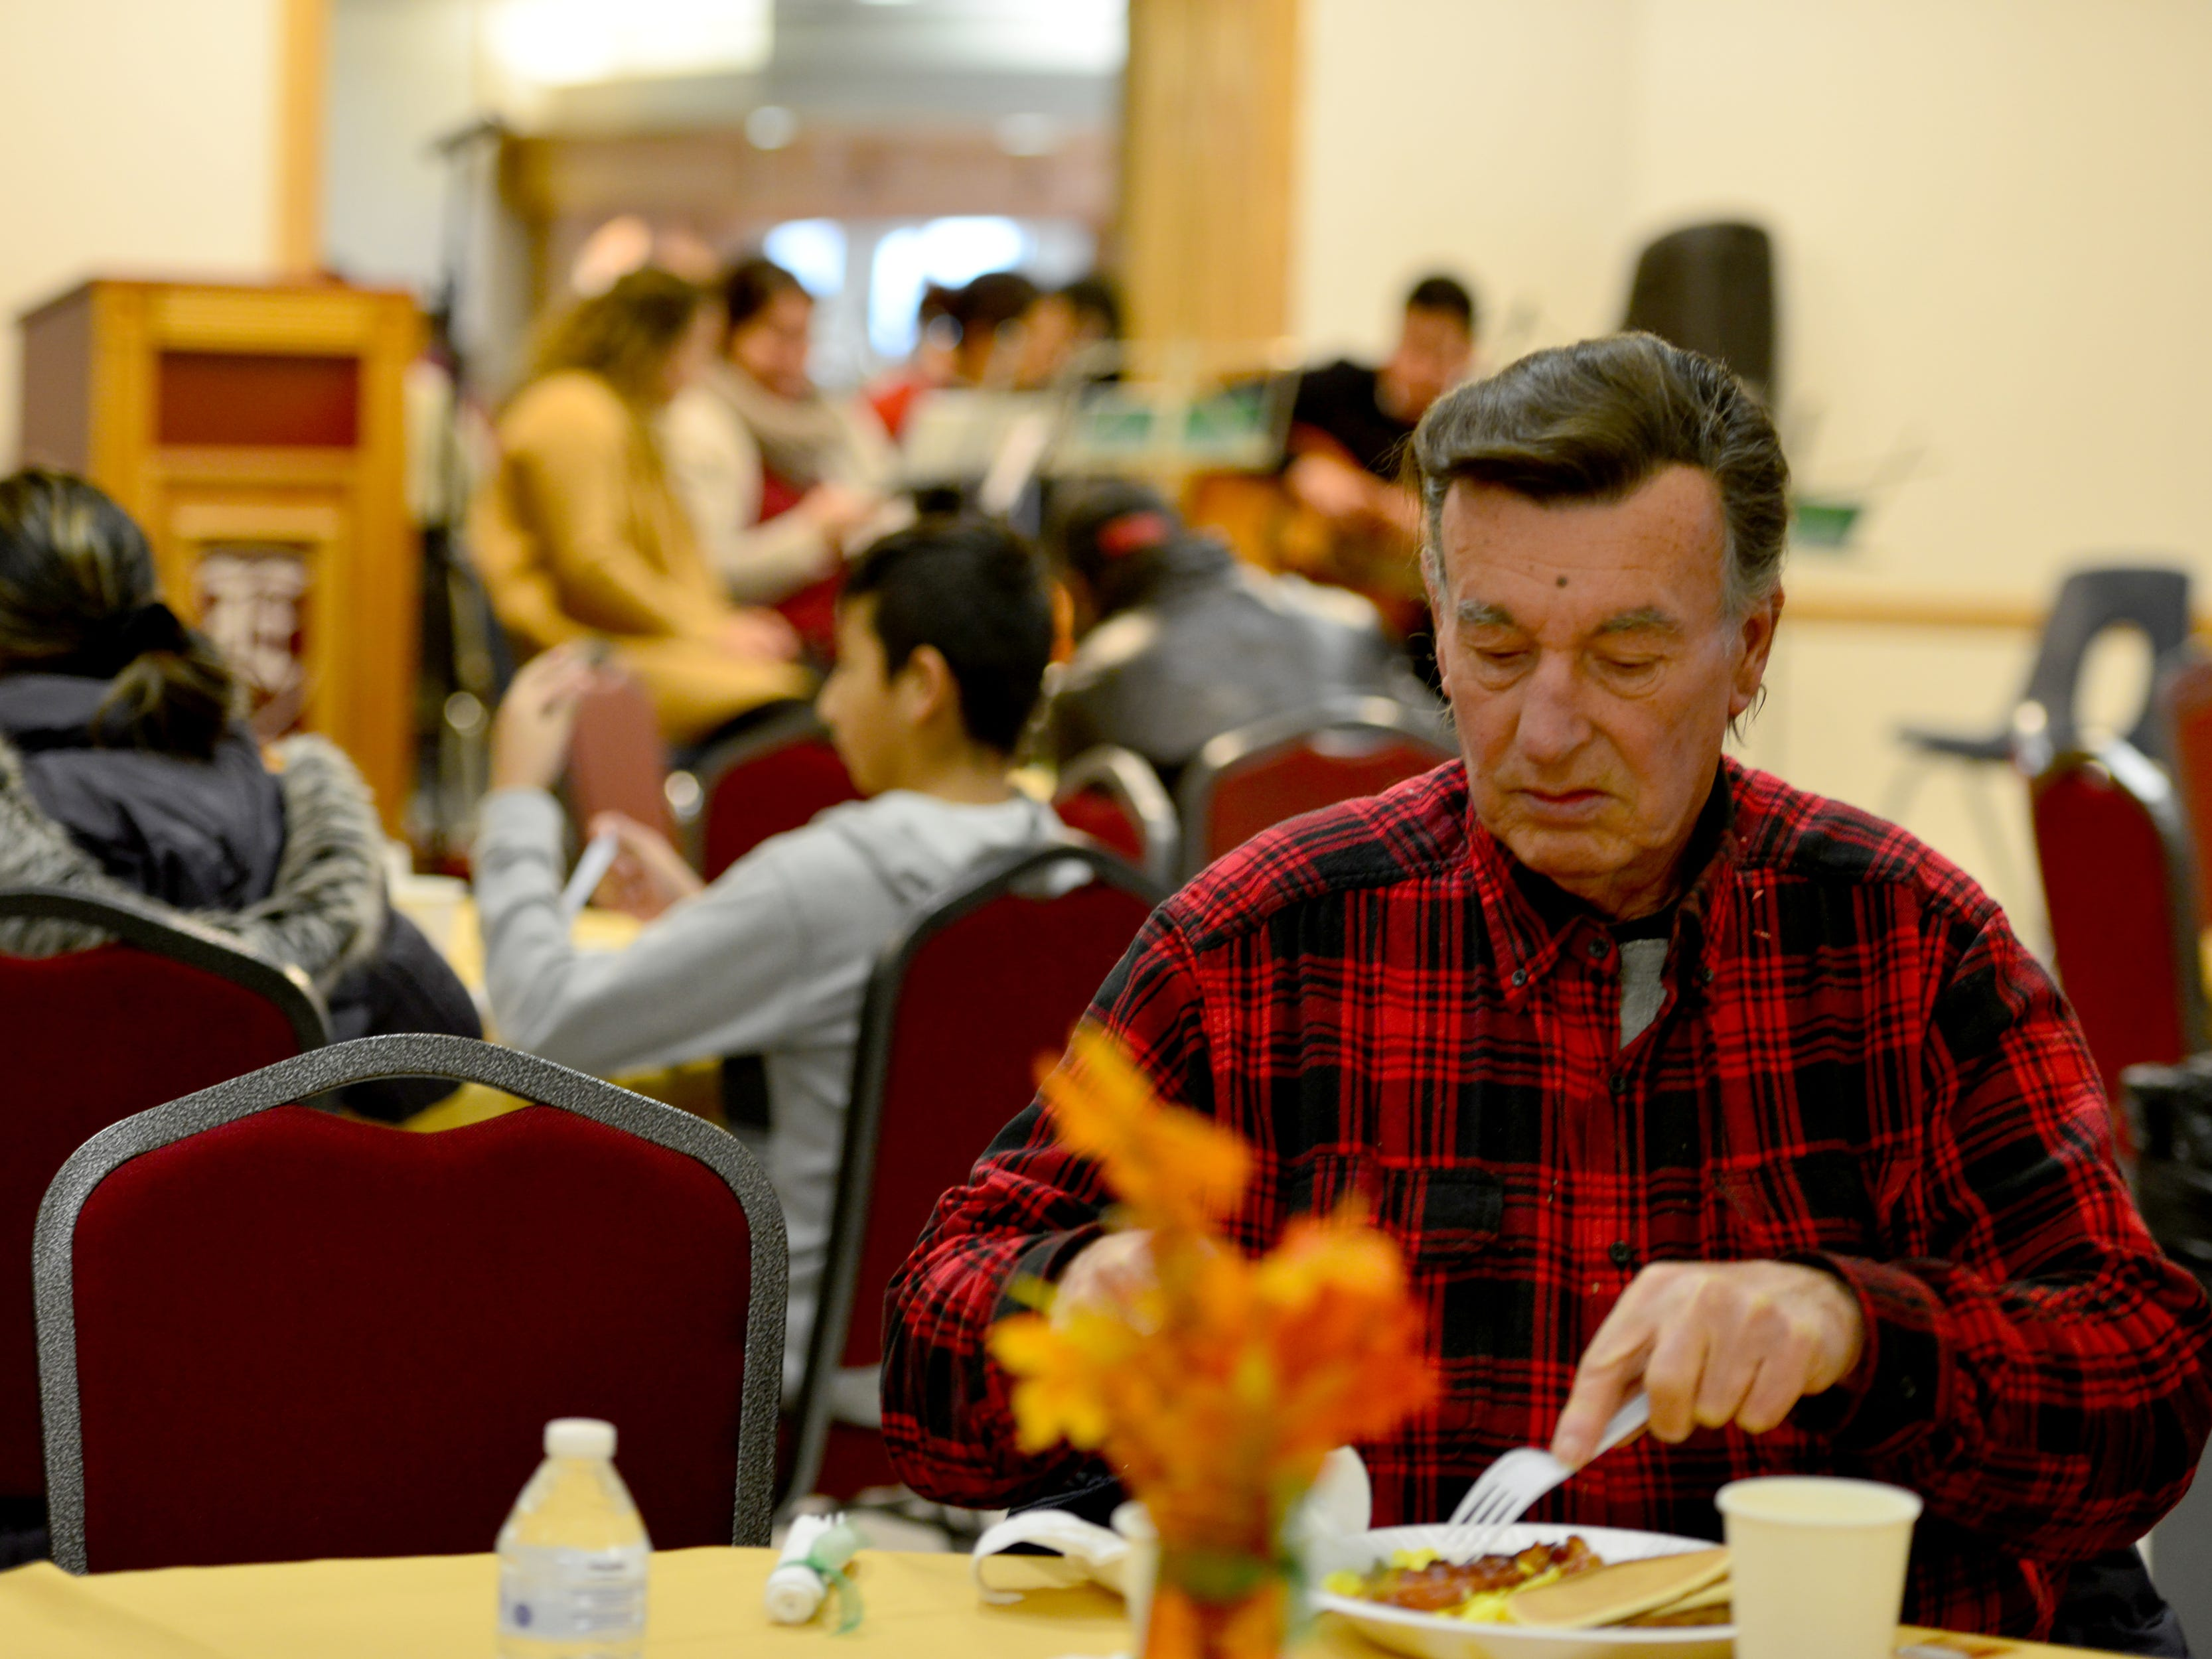 John Lozier, of Hackensack, east breakfast as a band plays holiday music in the background at Eastwick College, which is serving breakfast on Thanksgiving day with the Salvation Army in Hackensack on Thursday morning November 22, 2018.